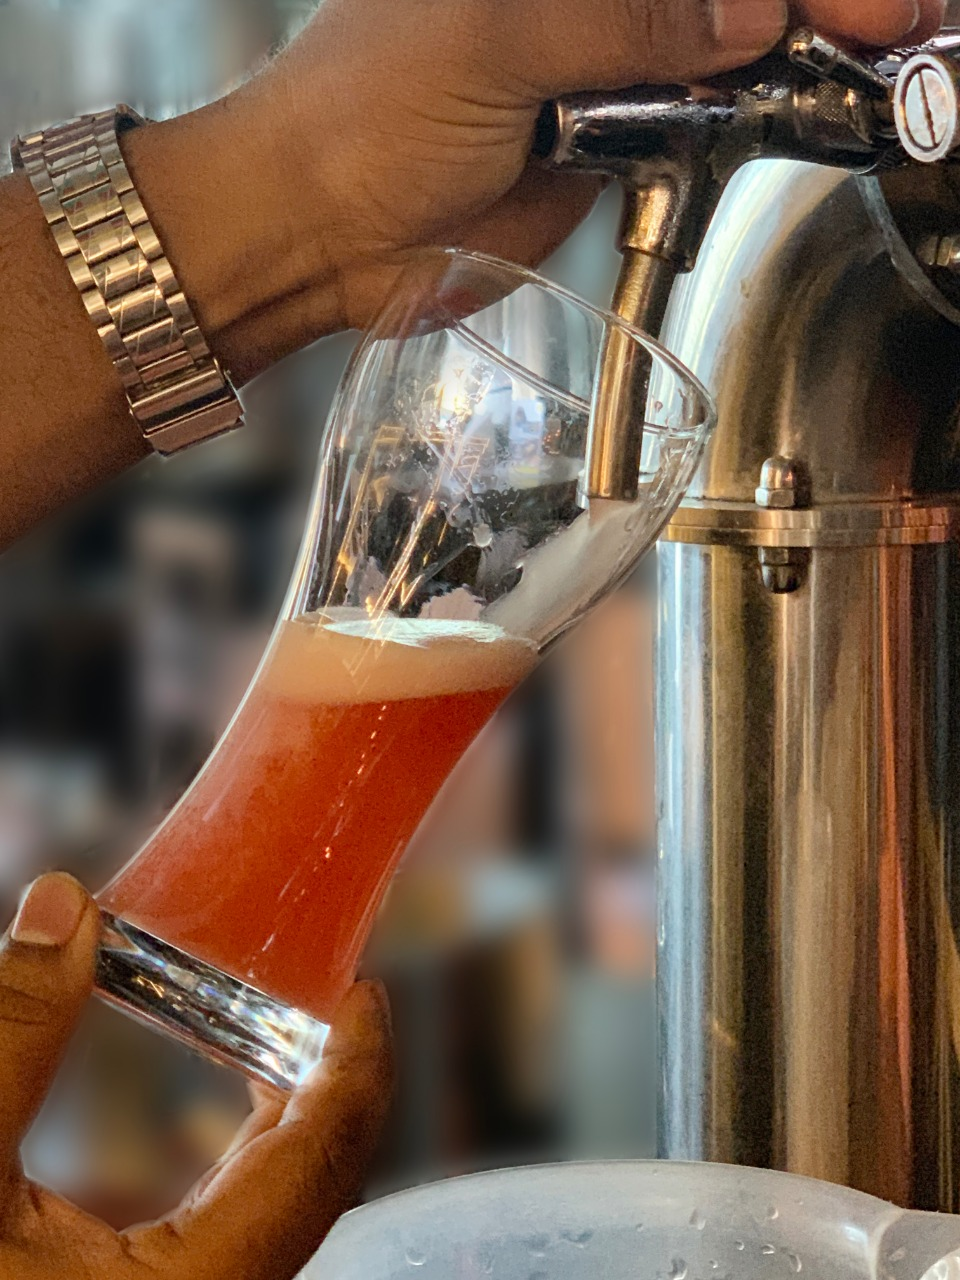 Raize The Bar introducesfirst Rose Wheat Ale in the city with their New Menu  Items